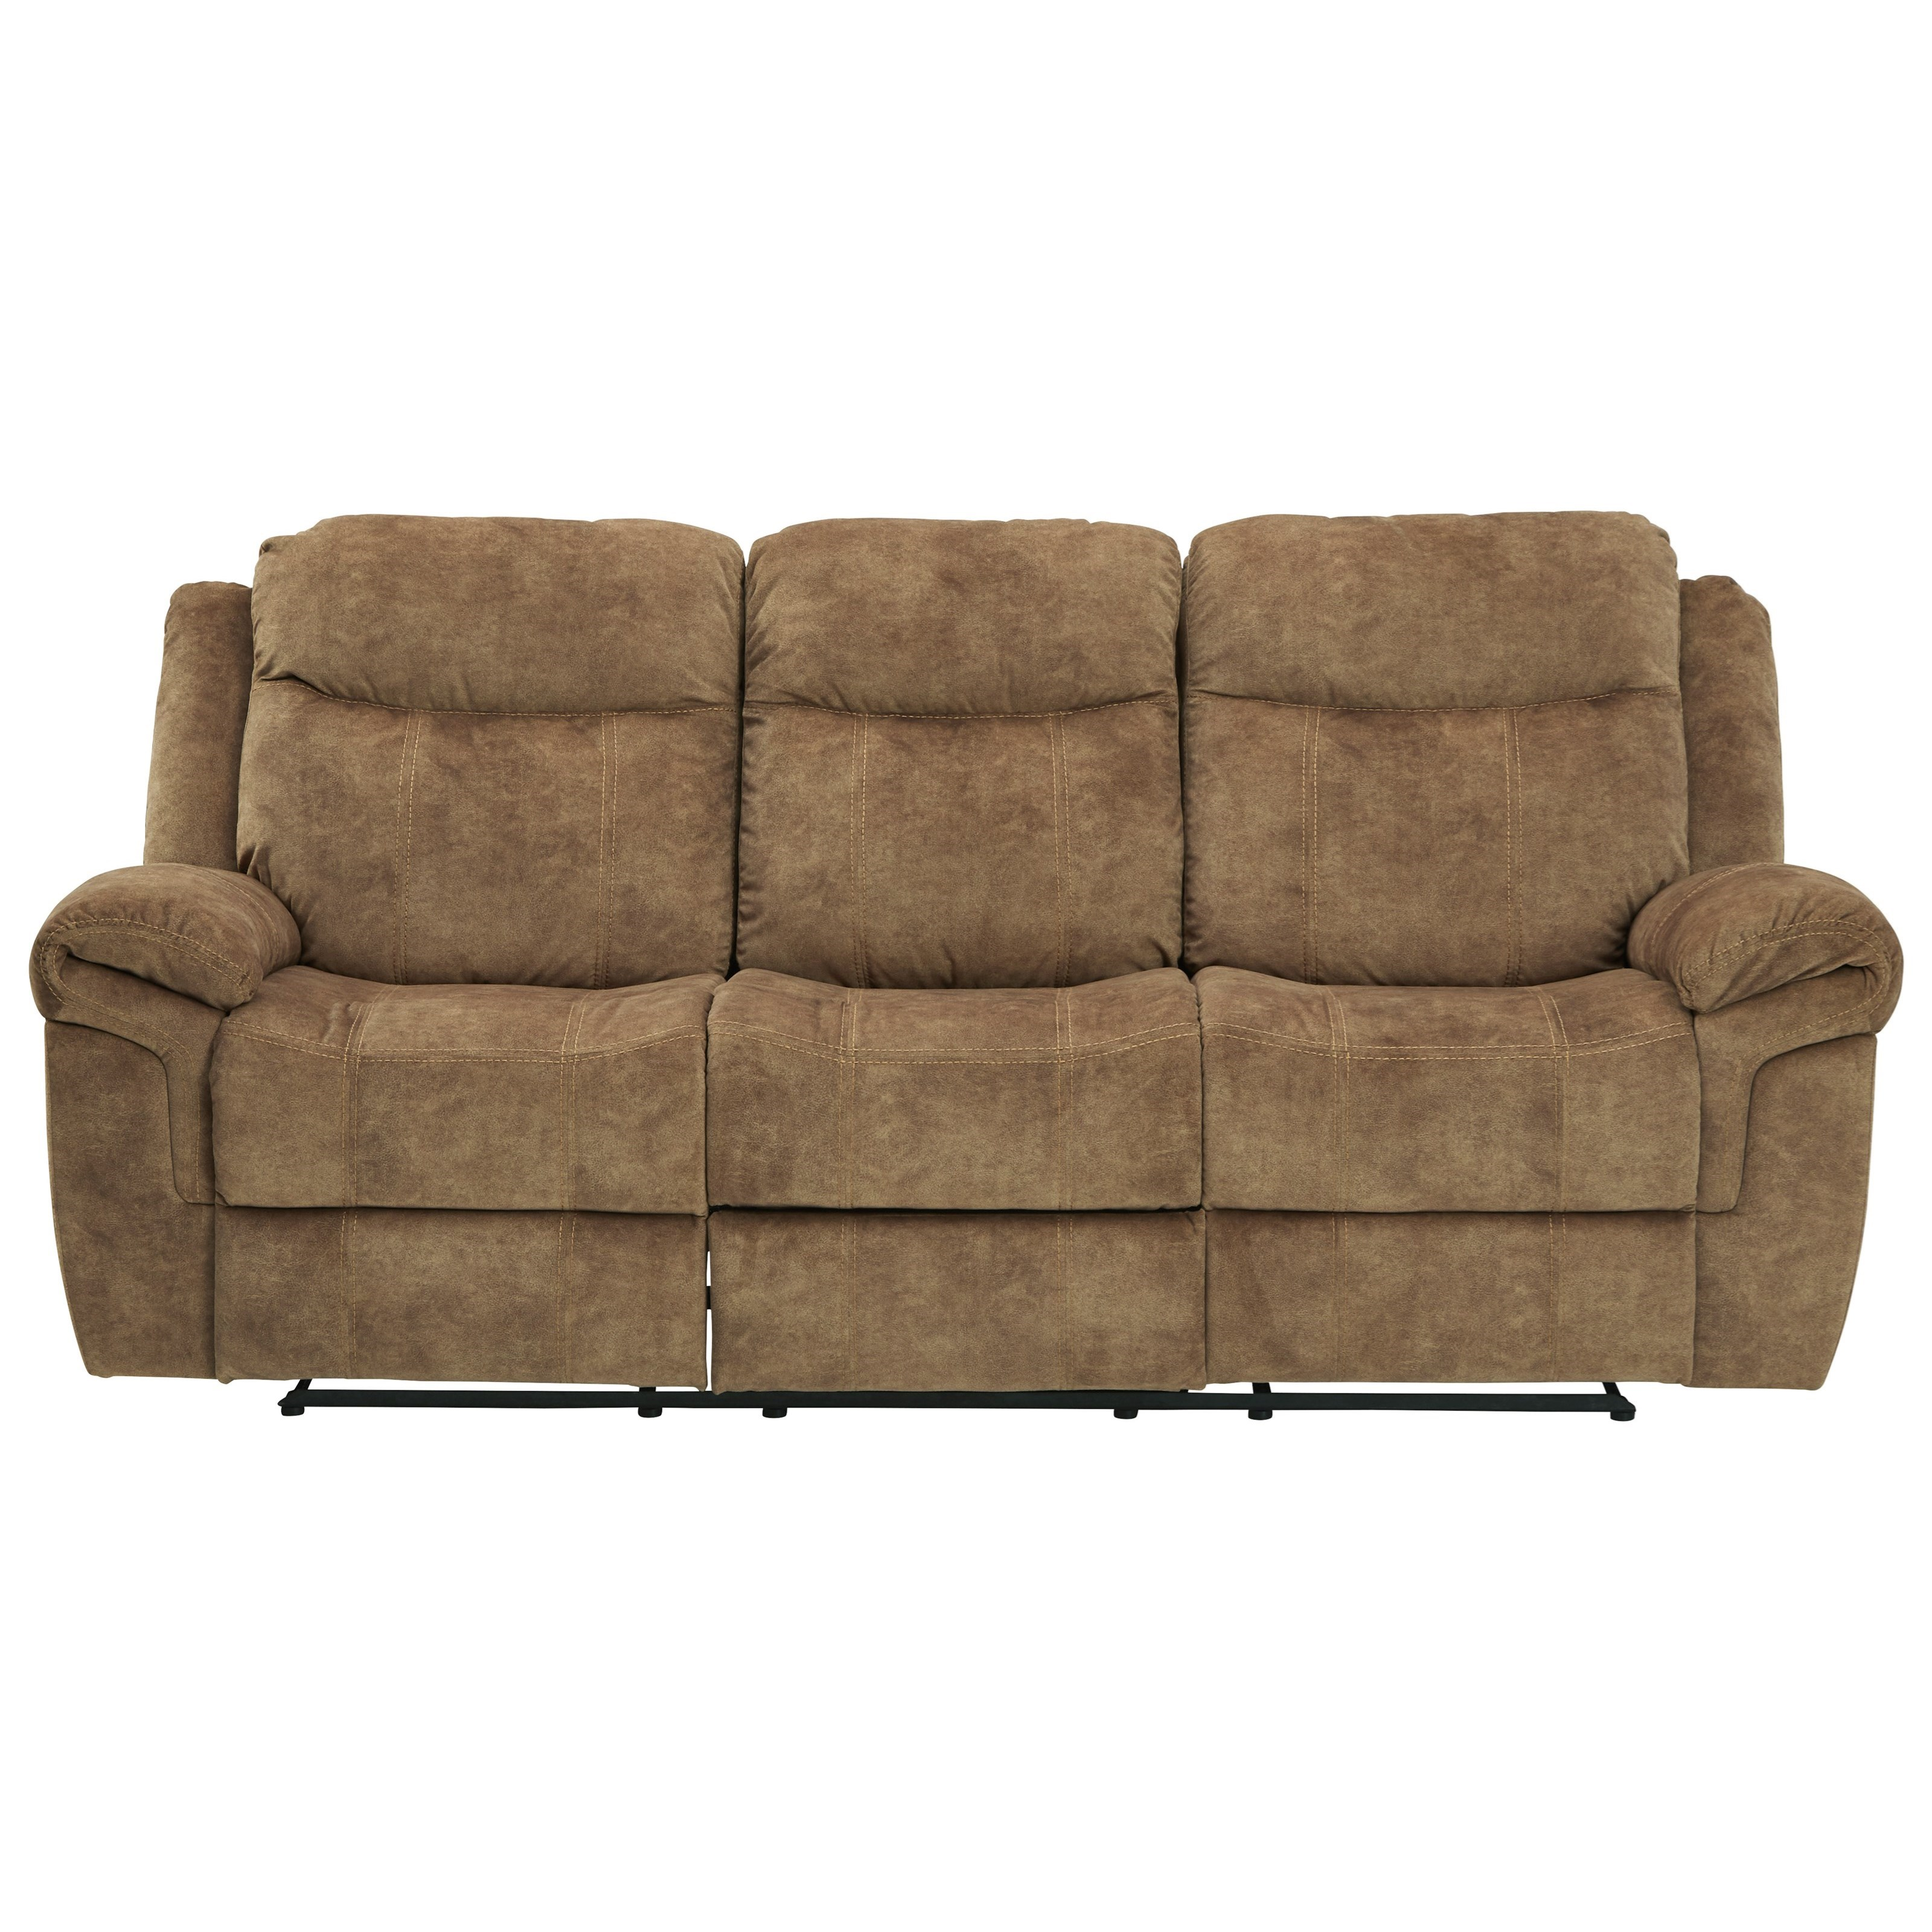 Huddle-Up Reclining Sofa w/ Drop Down Table by Signature Design by Ashley at Furniture Barn